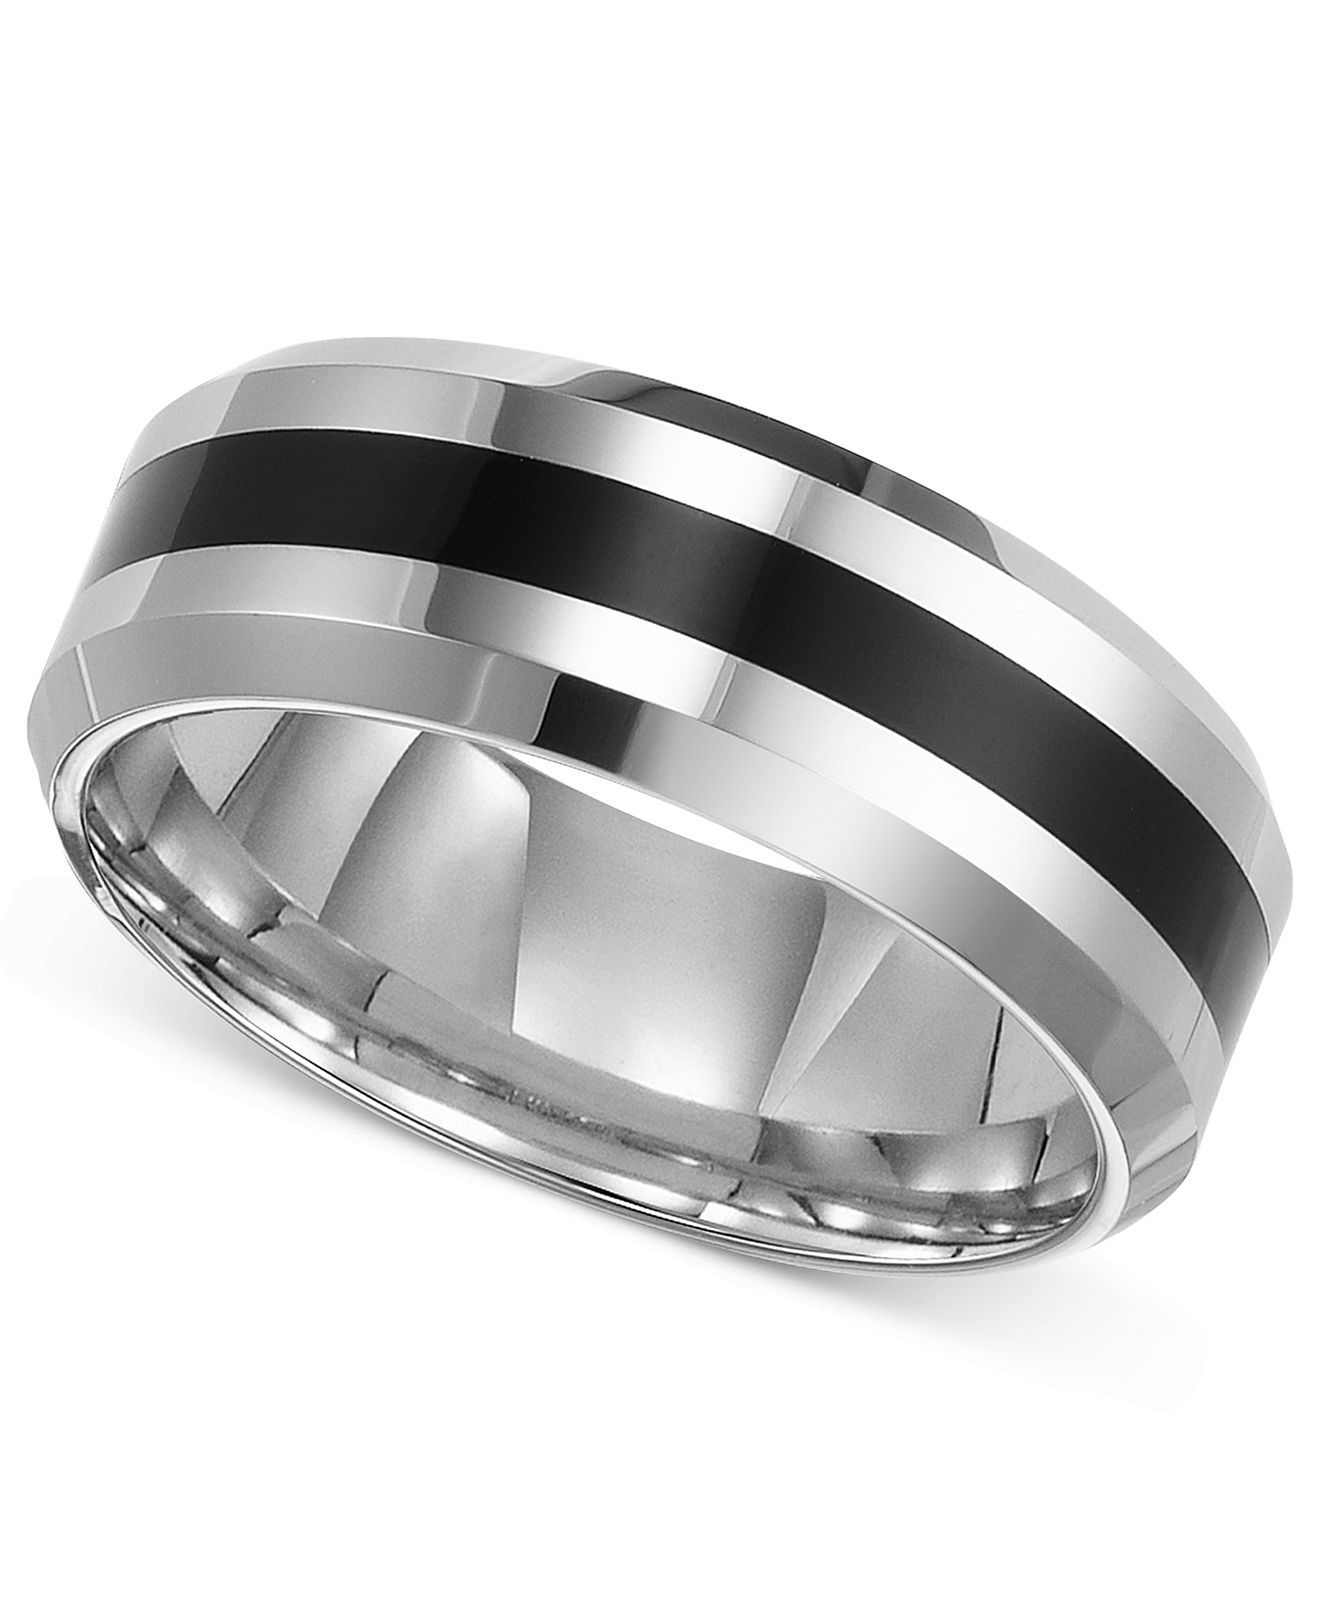 Triton Men S Tungsten Carbide Ring Comfort Fit Wedding Band Reviews Rings Jewelry Watches Macy S Tungsten Carbide Wedding Bands Comfort Fit Wedding Band Wedding Ring Bands